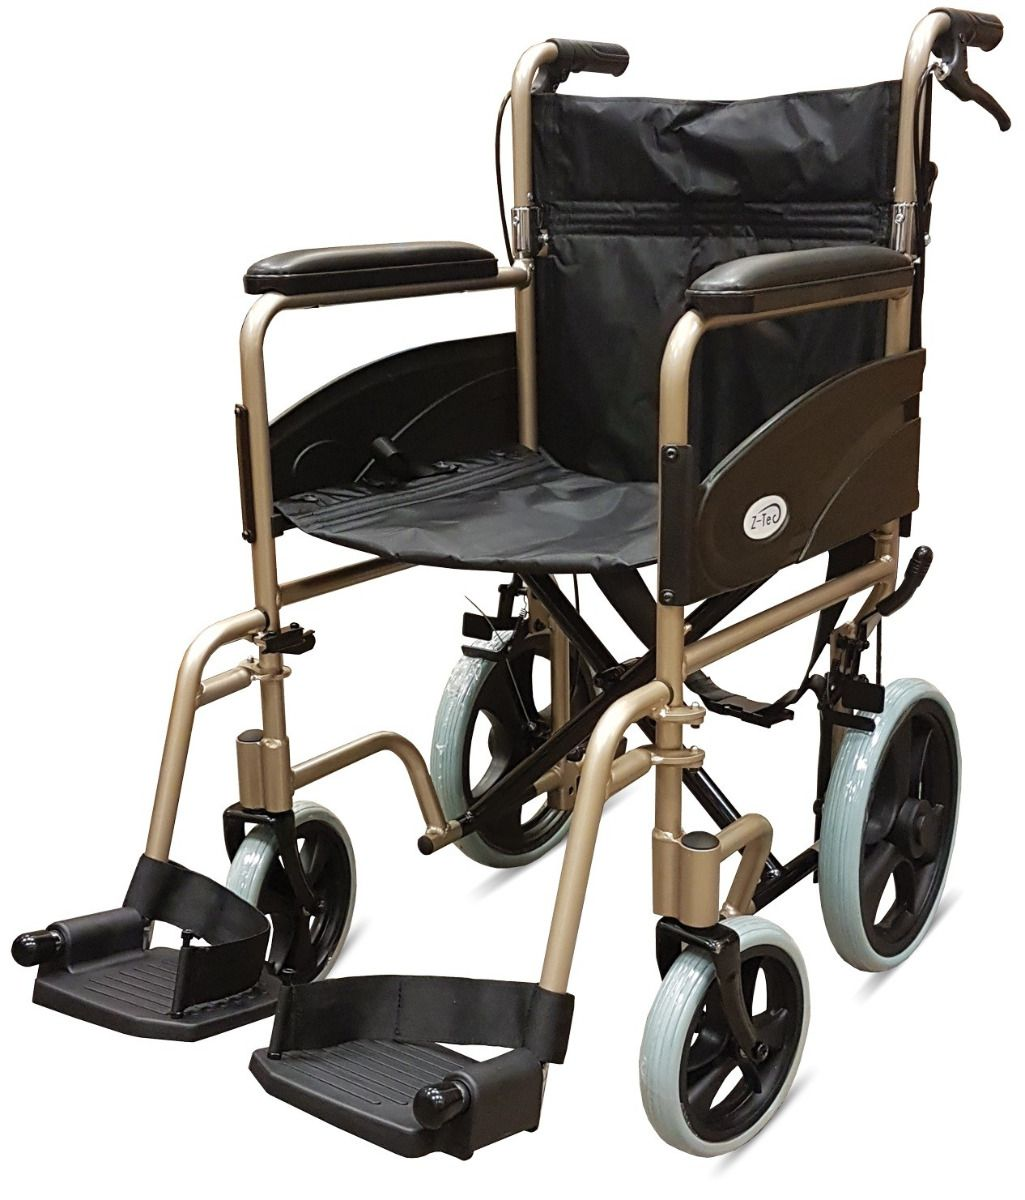 Z-Tec 601X Aluminium Transit Wheelchair in champagne colour frame